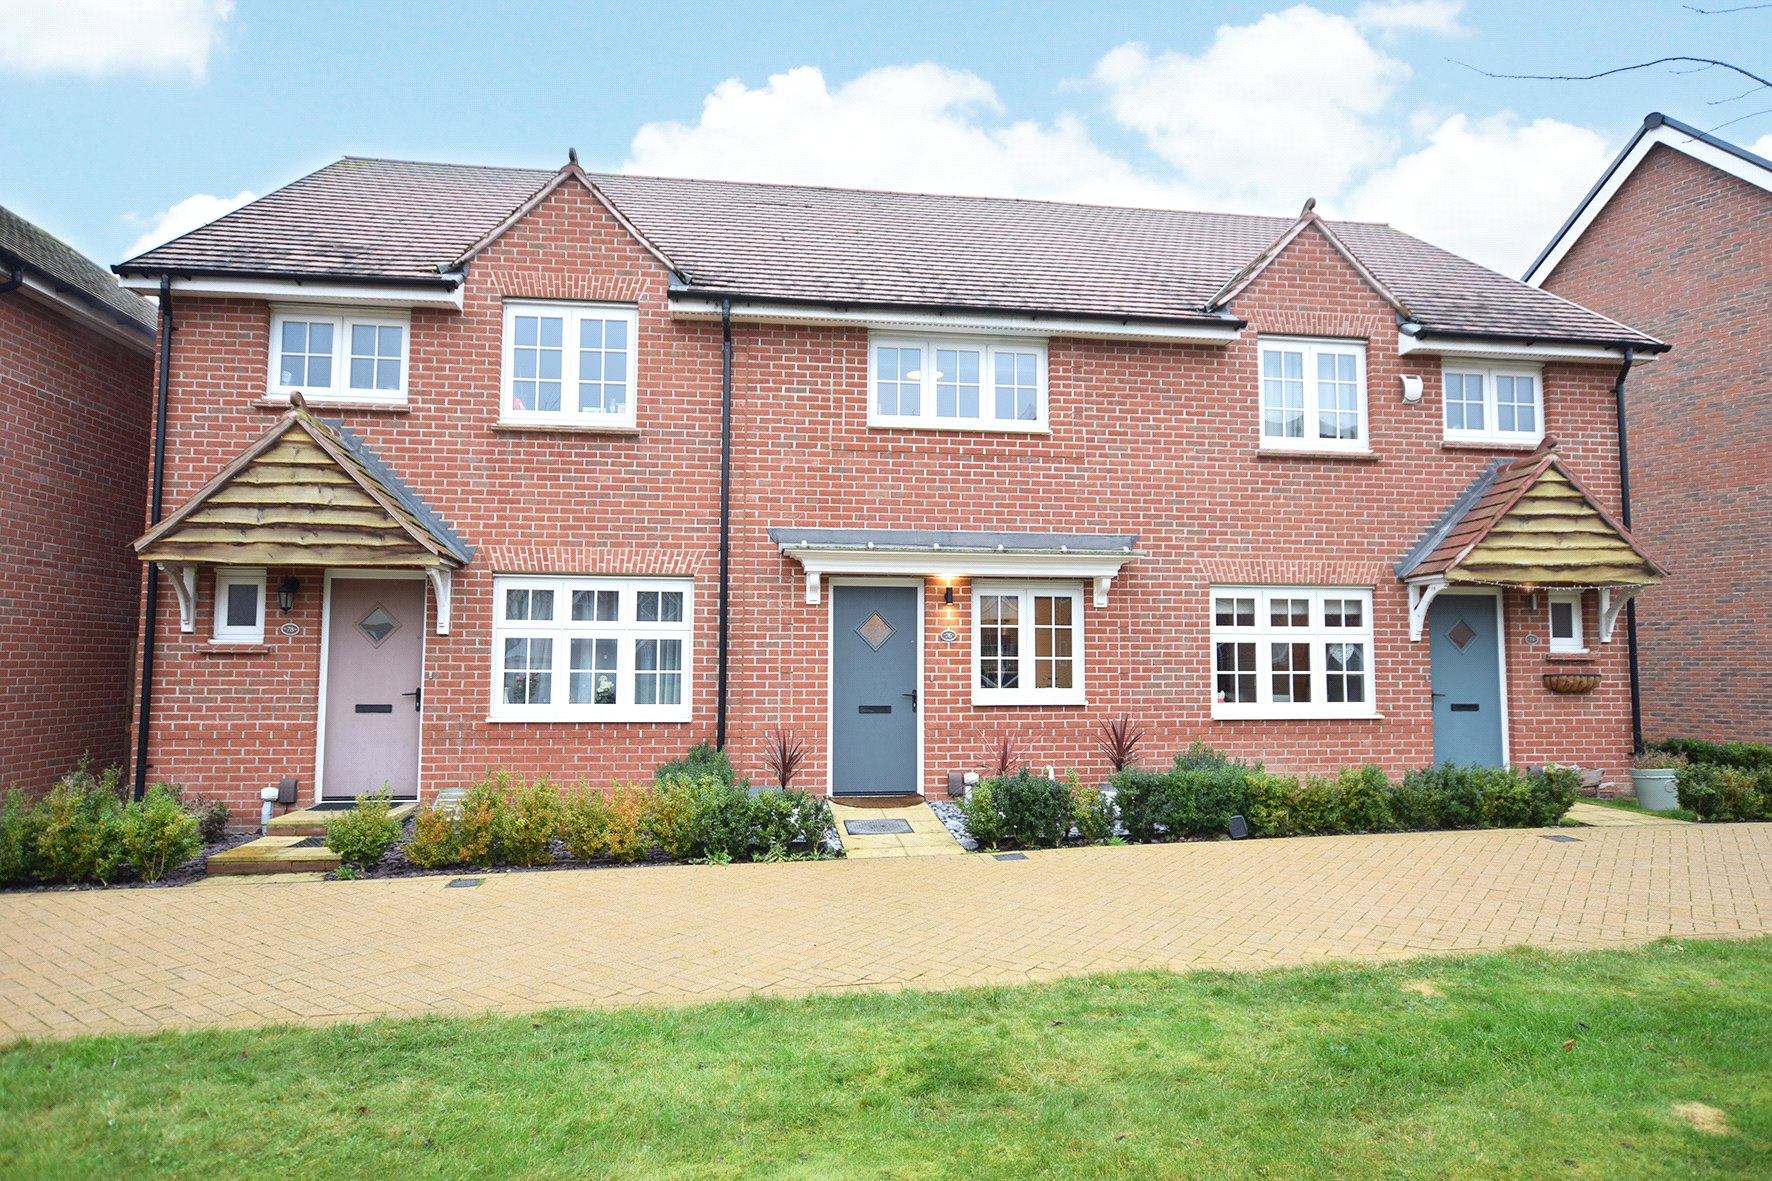 2 Bedrooms Terraced House for sale in Merlin Way, Jennett's Park, Bracknell, Berkshire, RG12